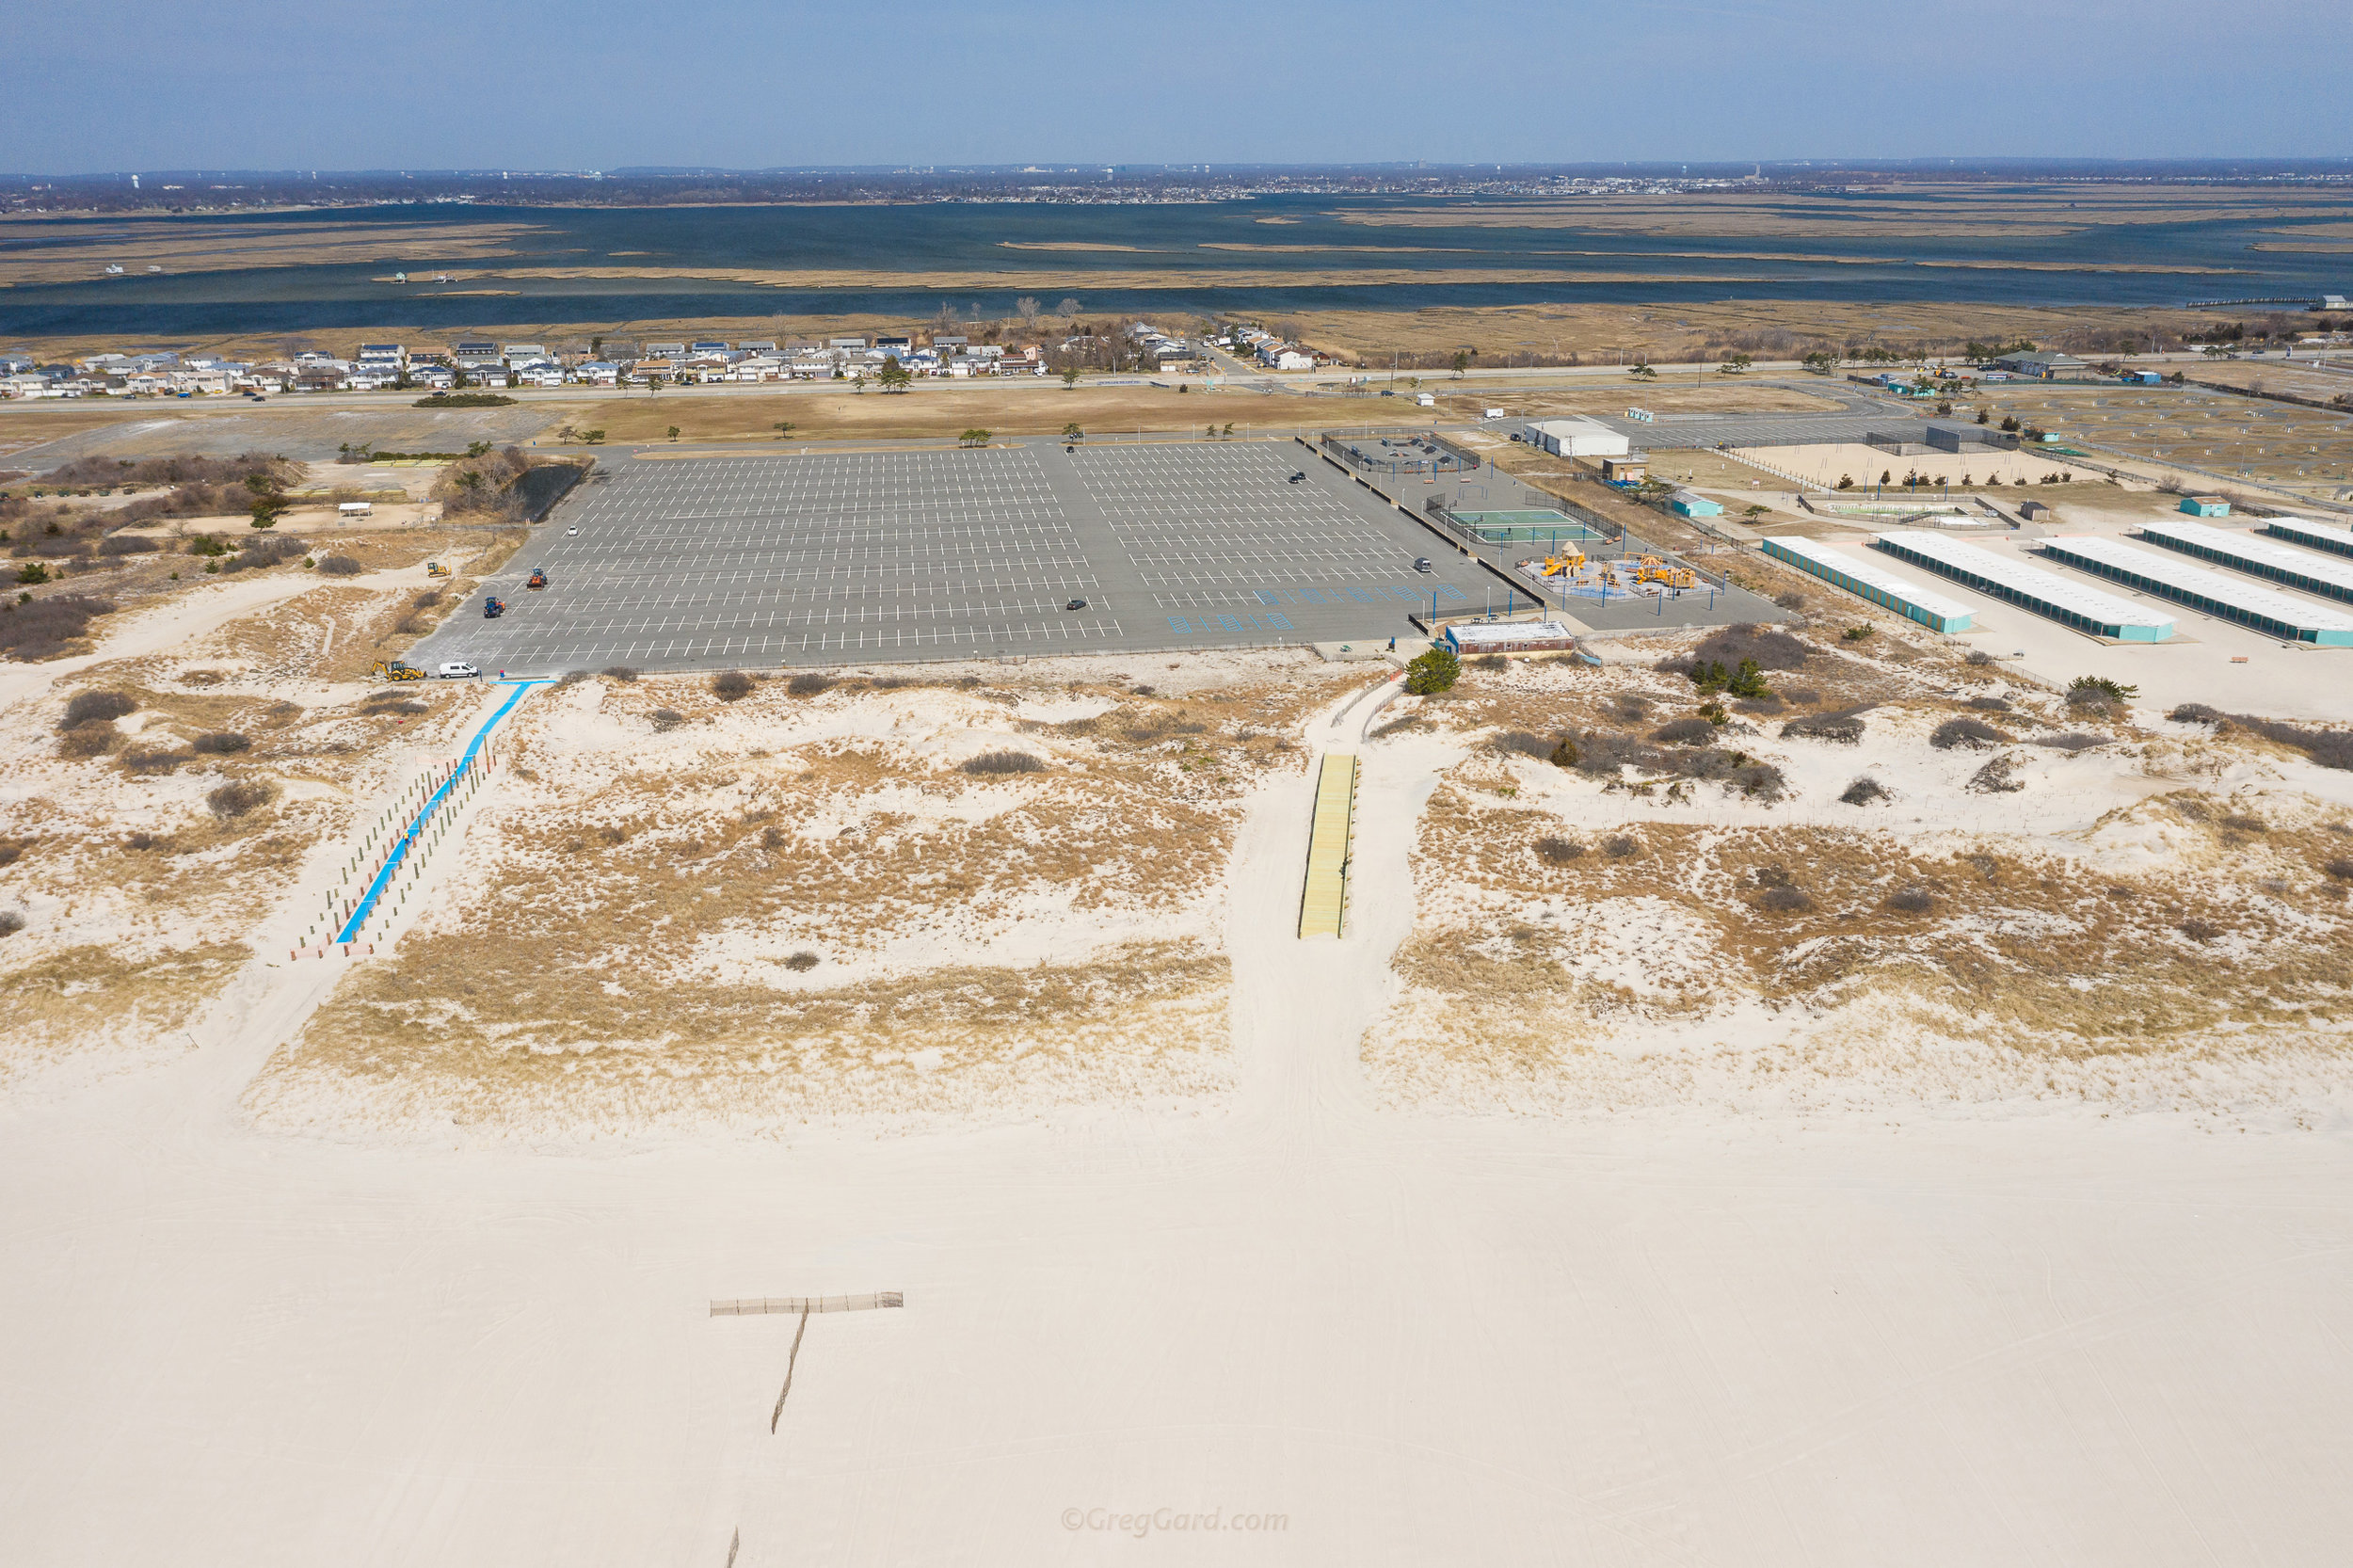 Beach entrances as seen from above - main parking lot at the far distance, bathrooms on the right - Note for the first comers, this is the direction you would be walking back to the parking lot from the beach - Area A on the right